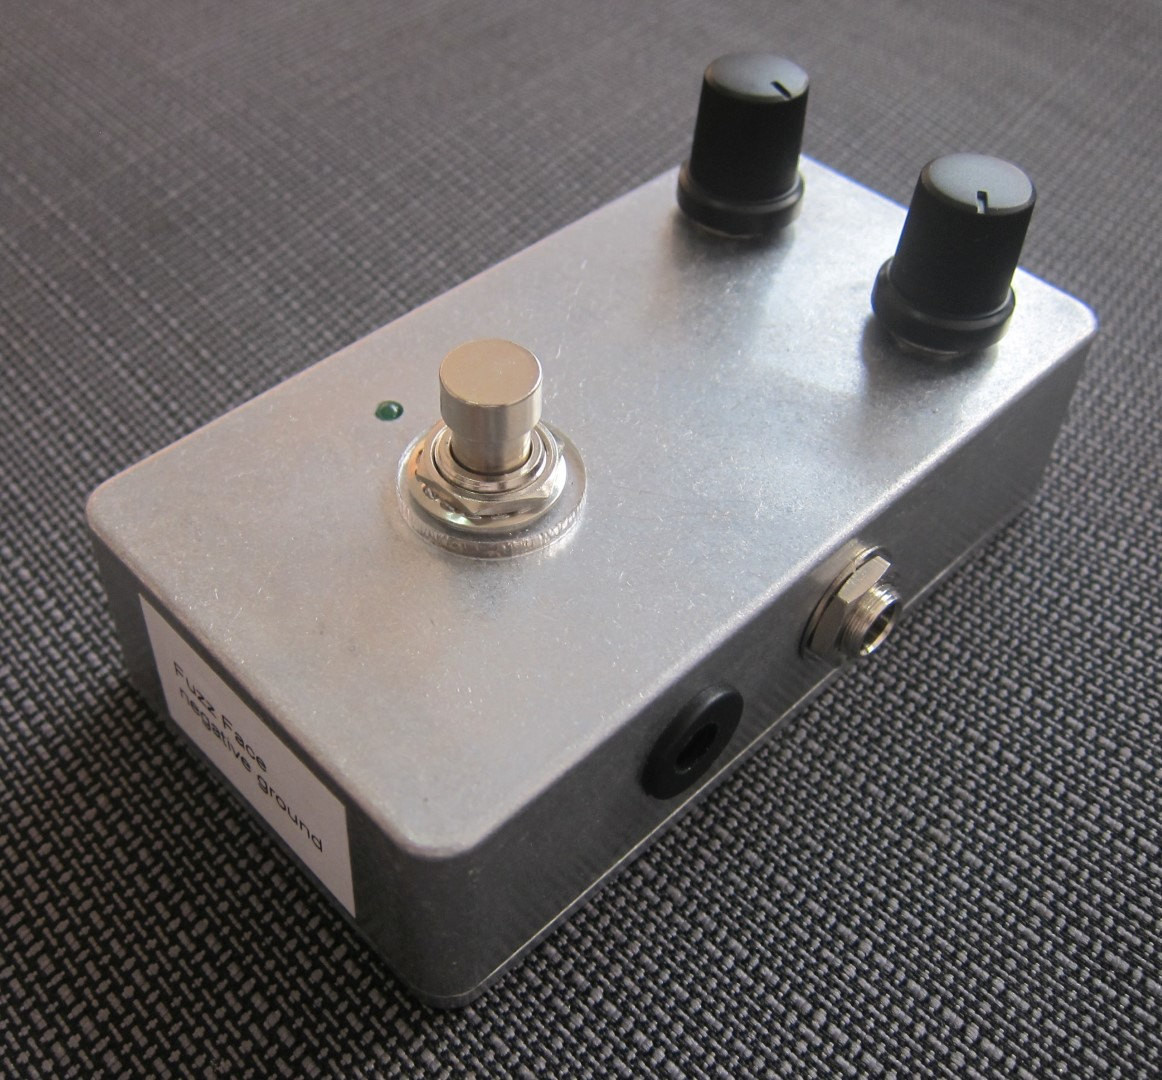 Best ideas about DIY Fuzz Pedal . Save or Pin Fuzz Face plete DIY Kit guitar effect pedal by Now.